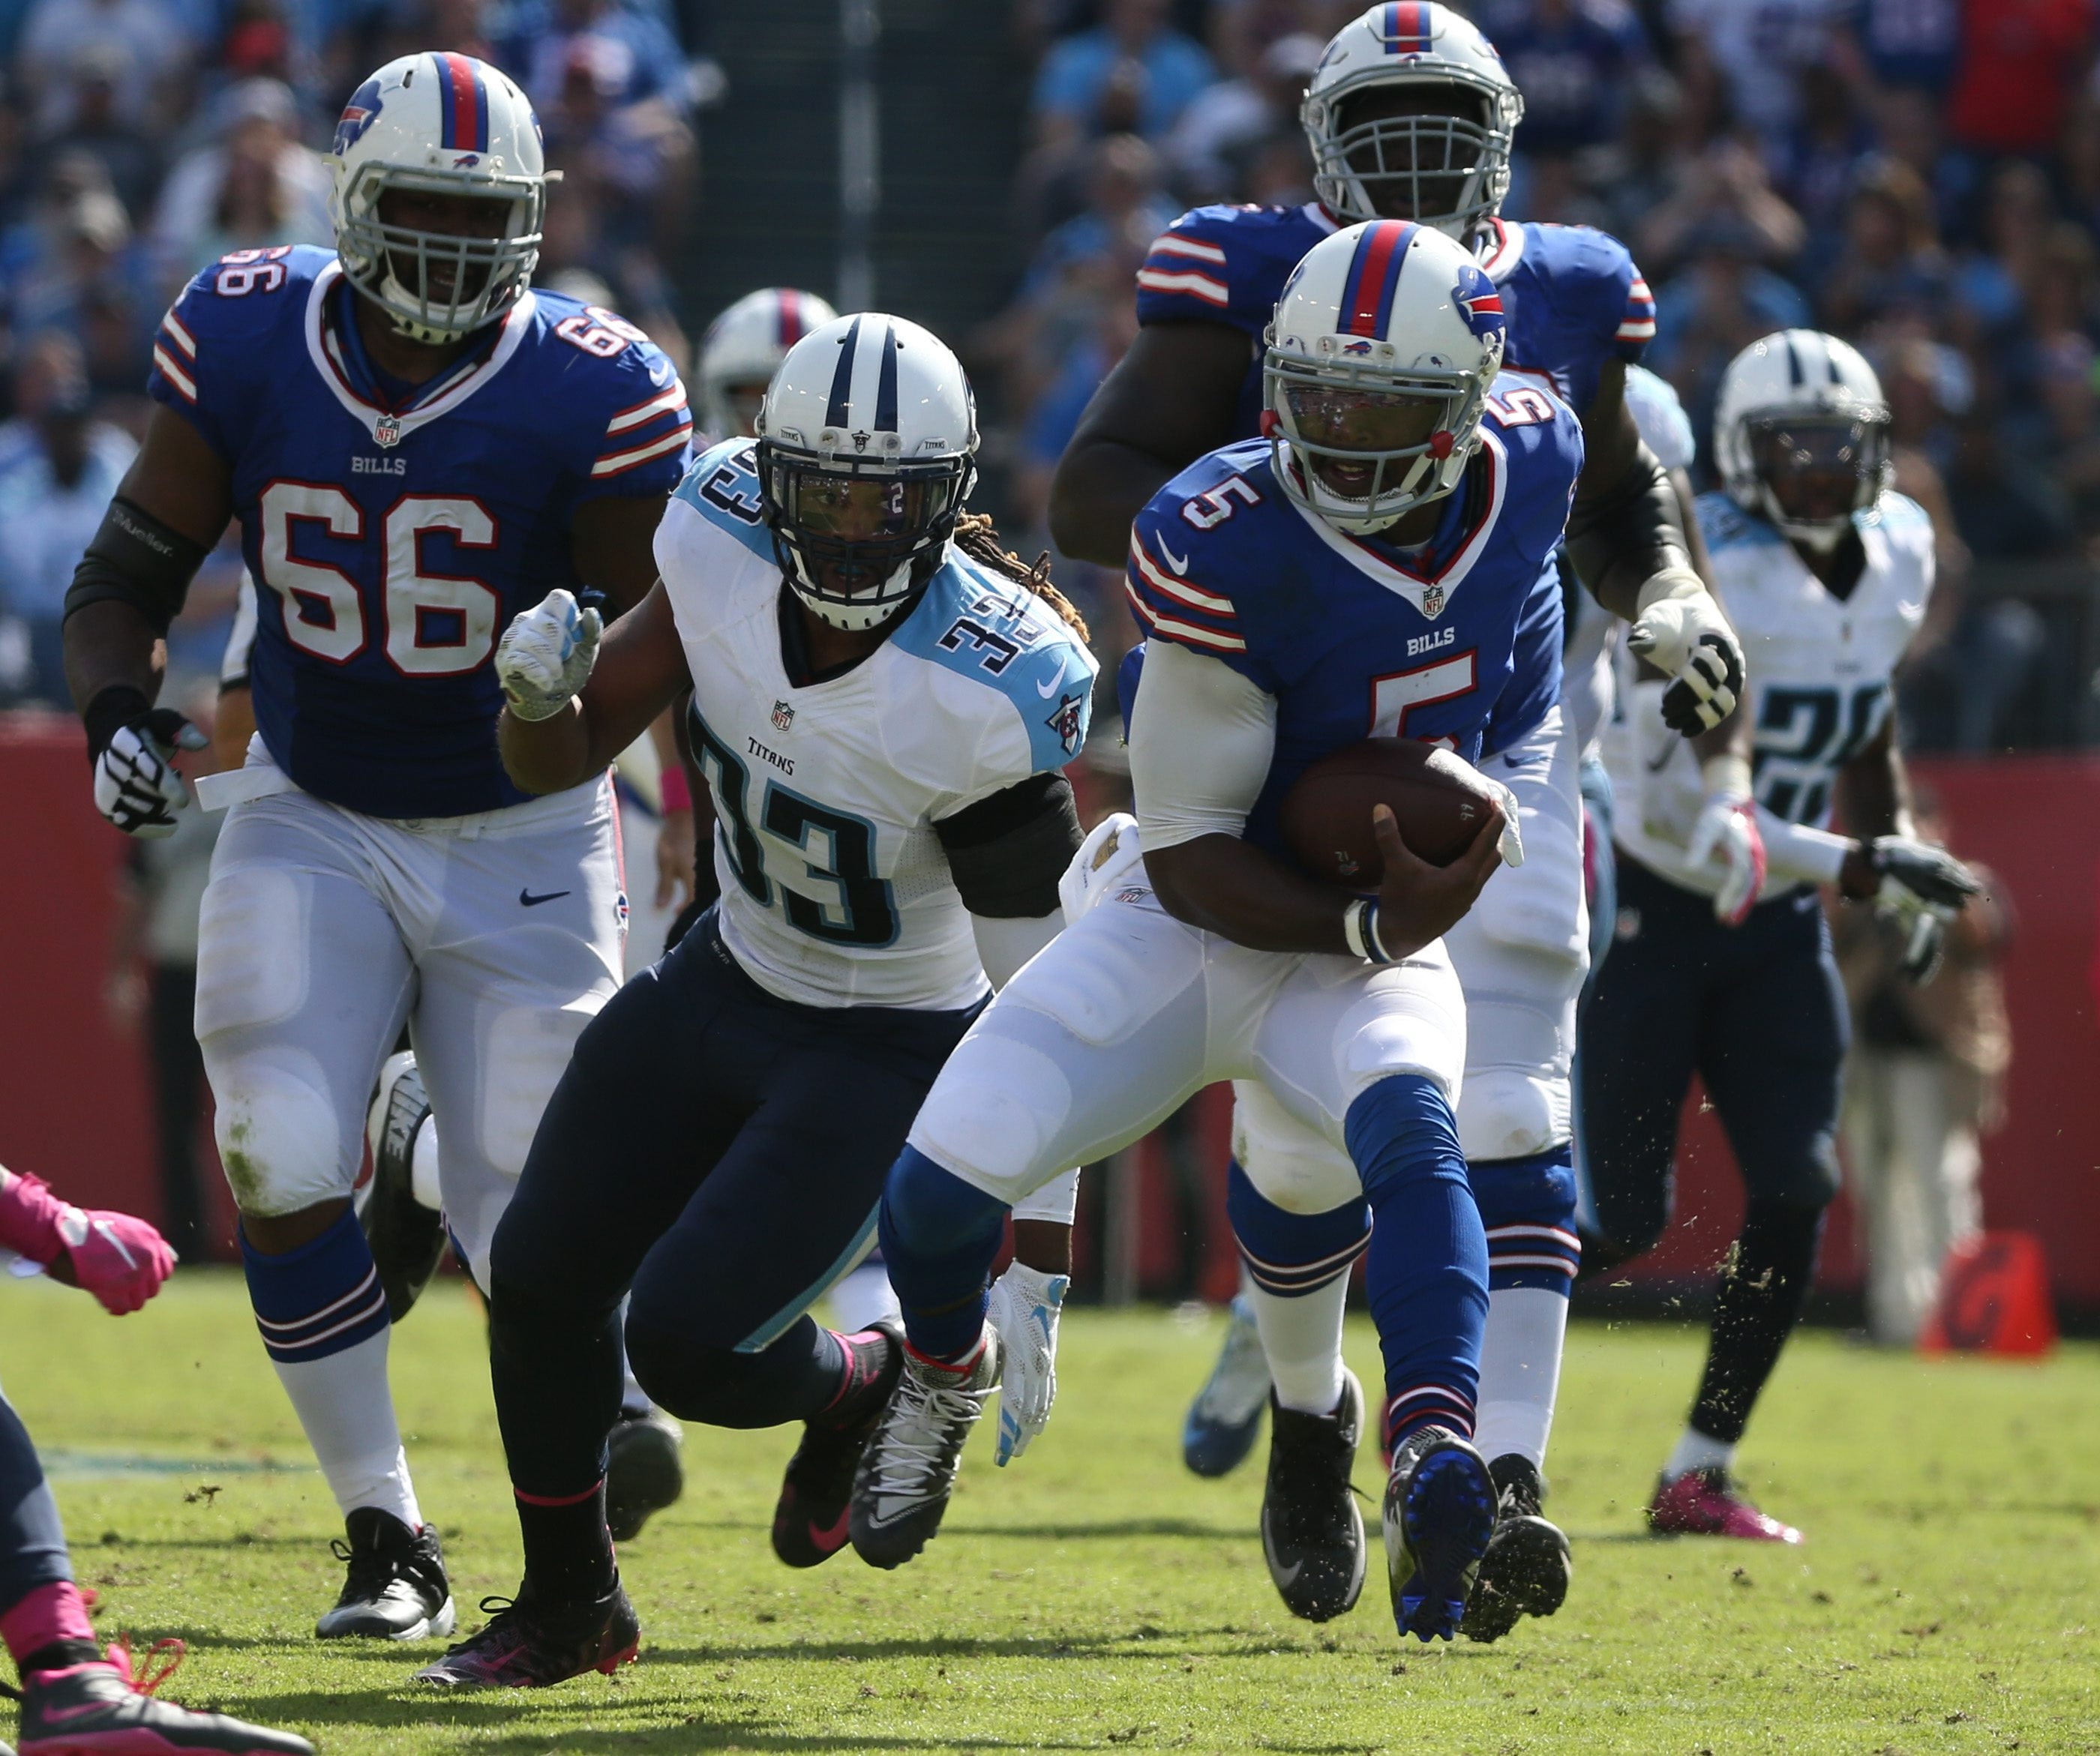 Buffalo Bills quarterback Tyrod Taylor (5) rushes for 26 yards and a first down in the third quarter at against the Tennessee Titans in Nashville, Tenn., on Oct. 11, 2015.